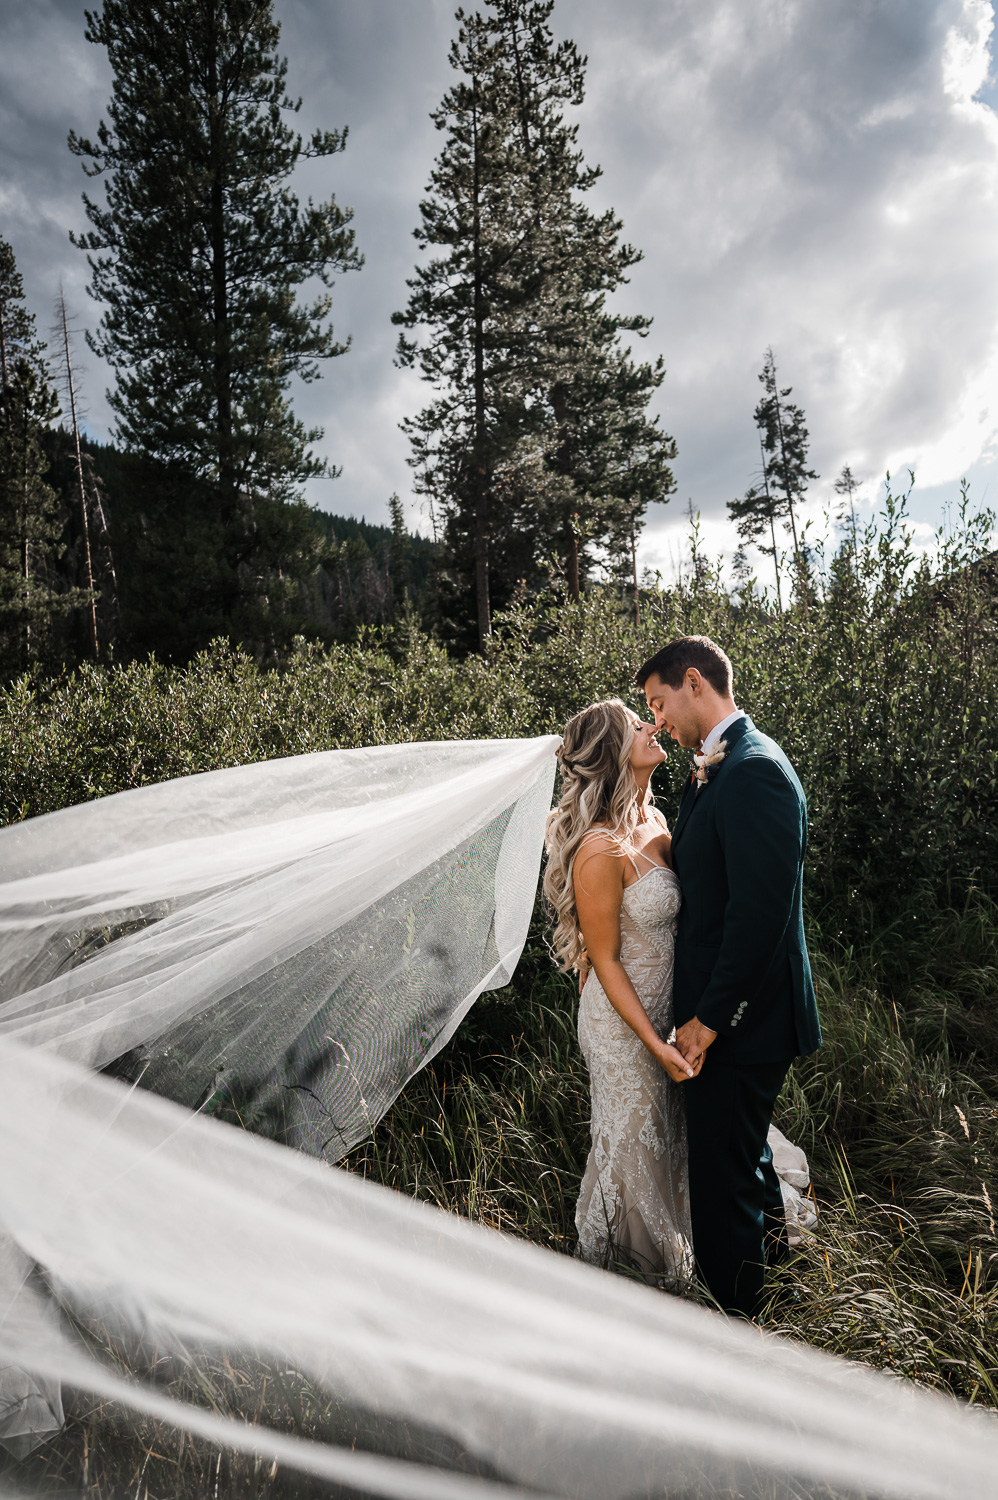 Bride and groom kiss while veil flows in wind at Piney River Ranch Vail CO